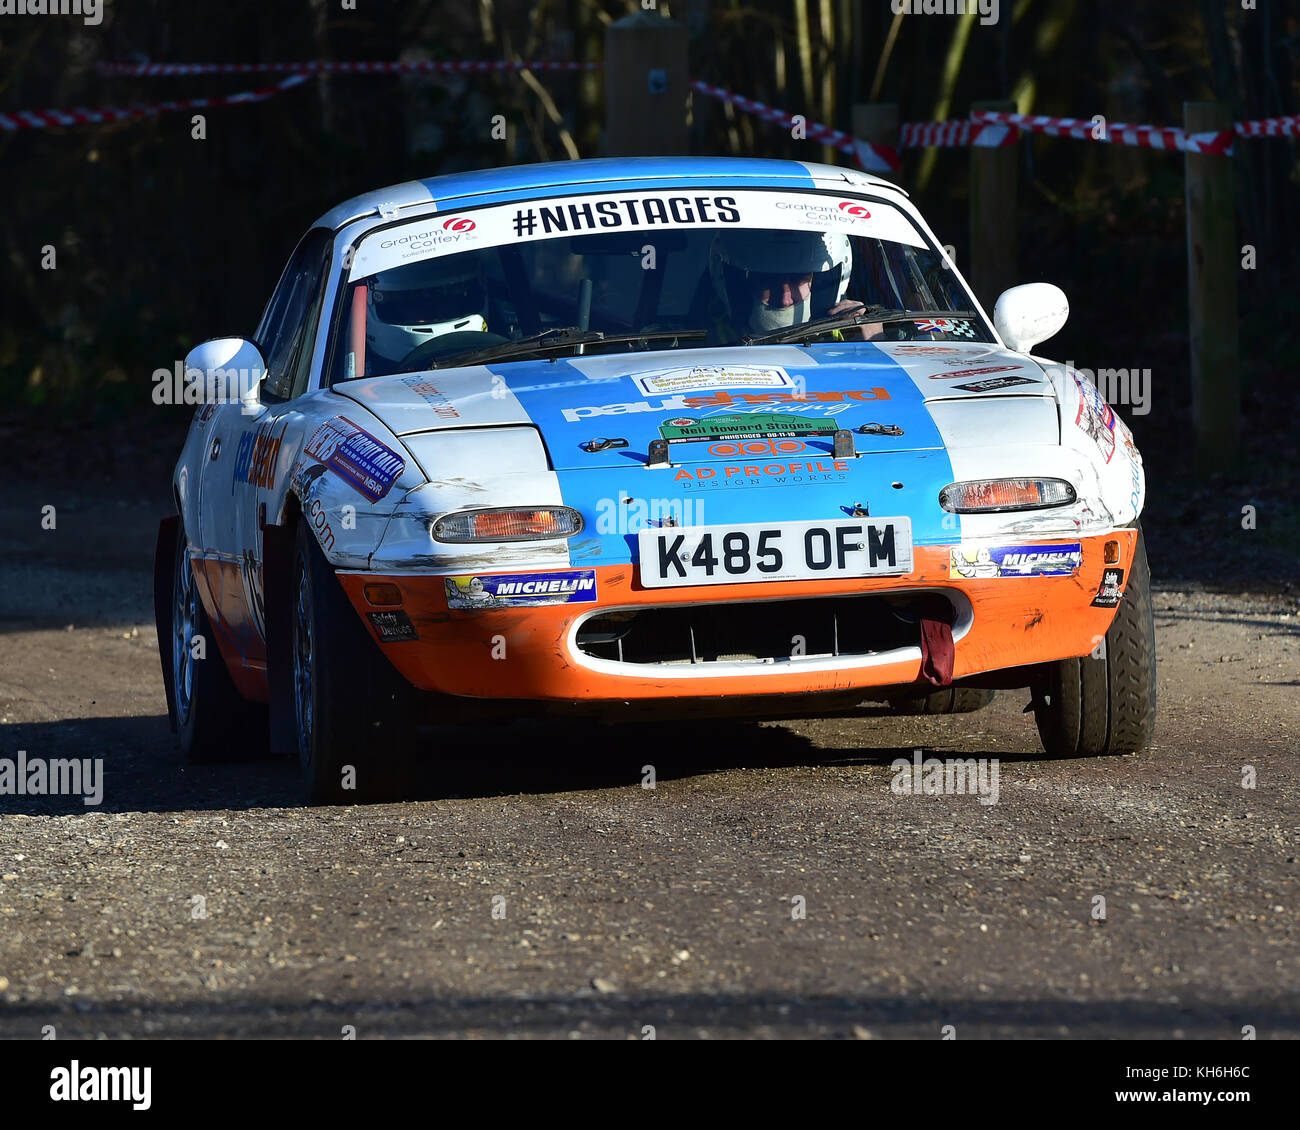 Paul Sheard, Shaun Hughes, Mazda MX5, MGJ Rally Stages, Chelmsford Motor Club, Brands Hatch,  Saturday, 21st January - Stock Image